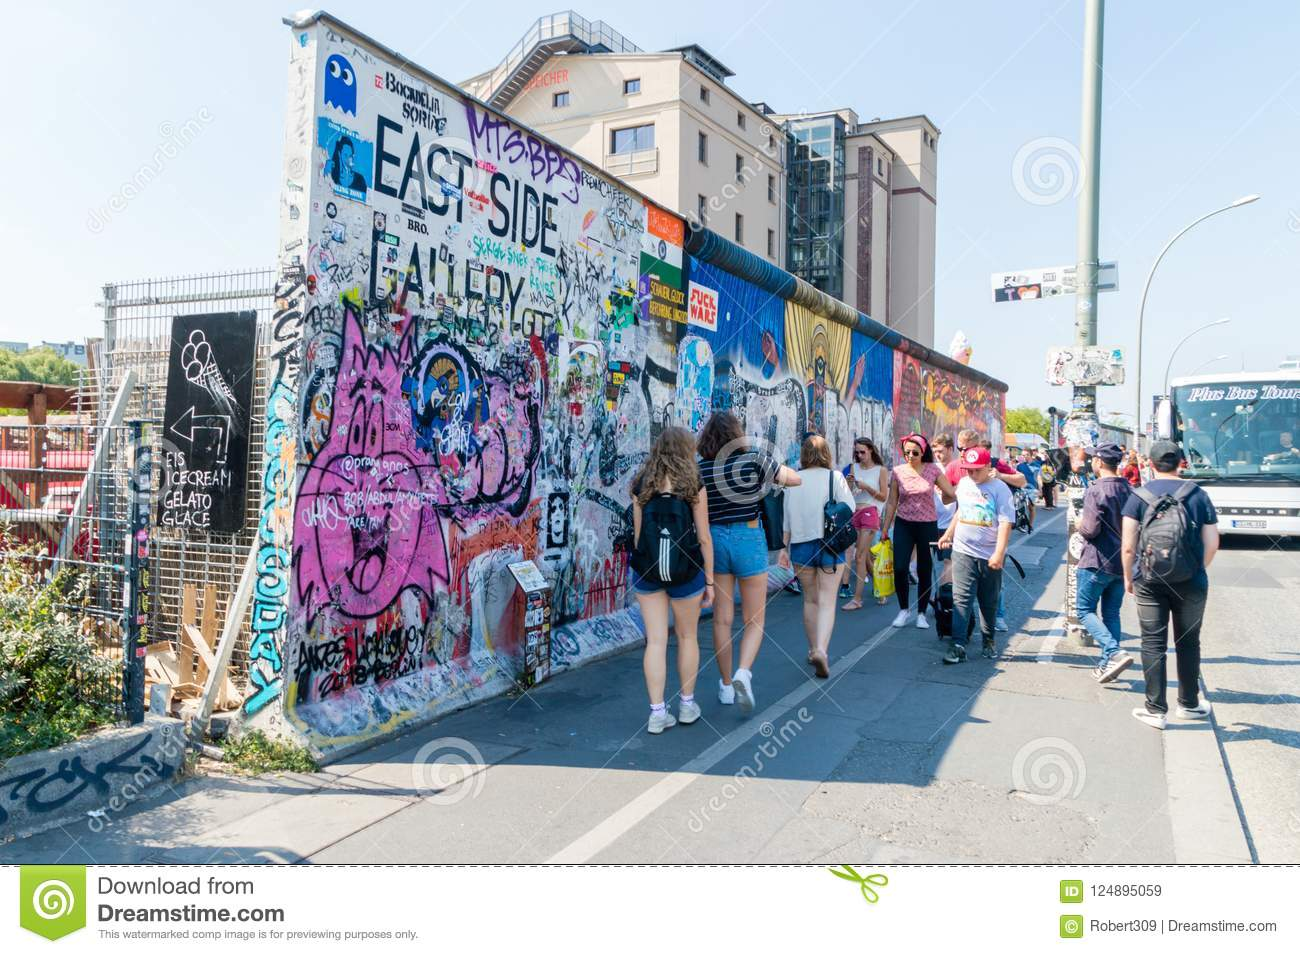 berlin germany august undefined people walking near east side gallery berlin wall undefined people walking near east side